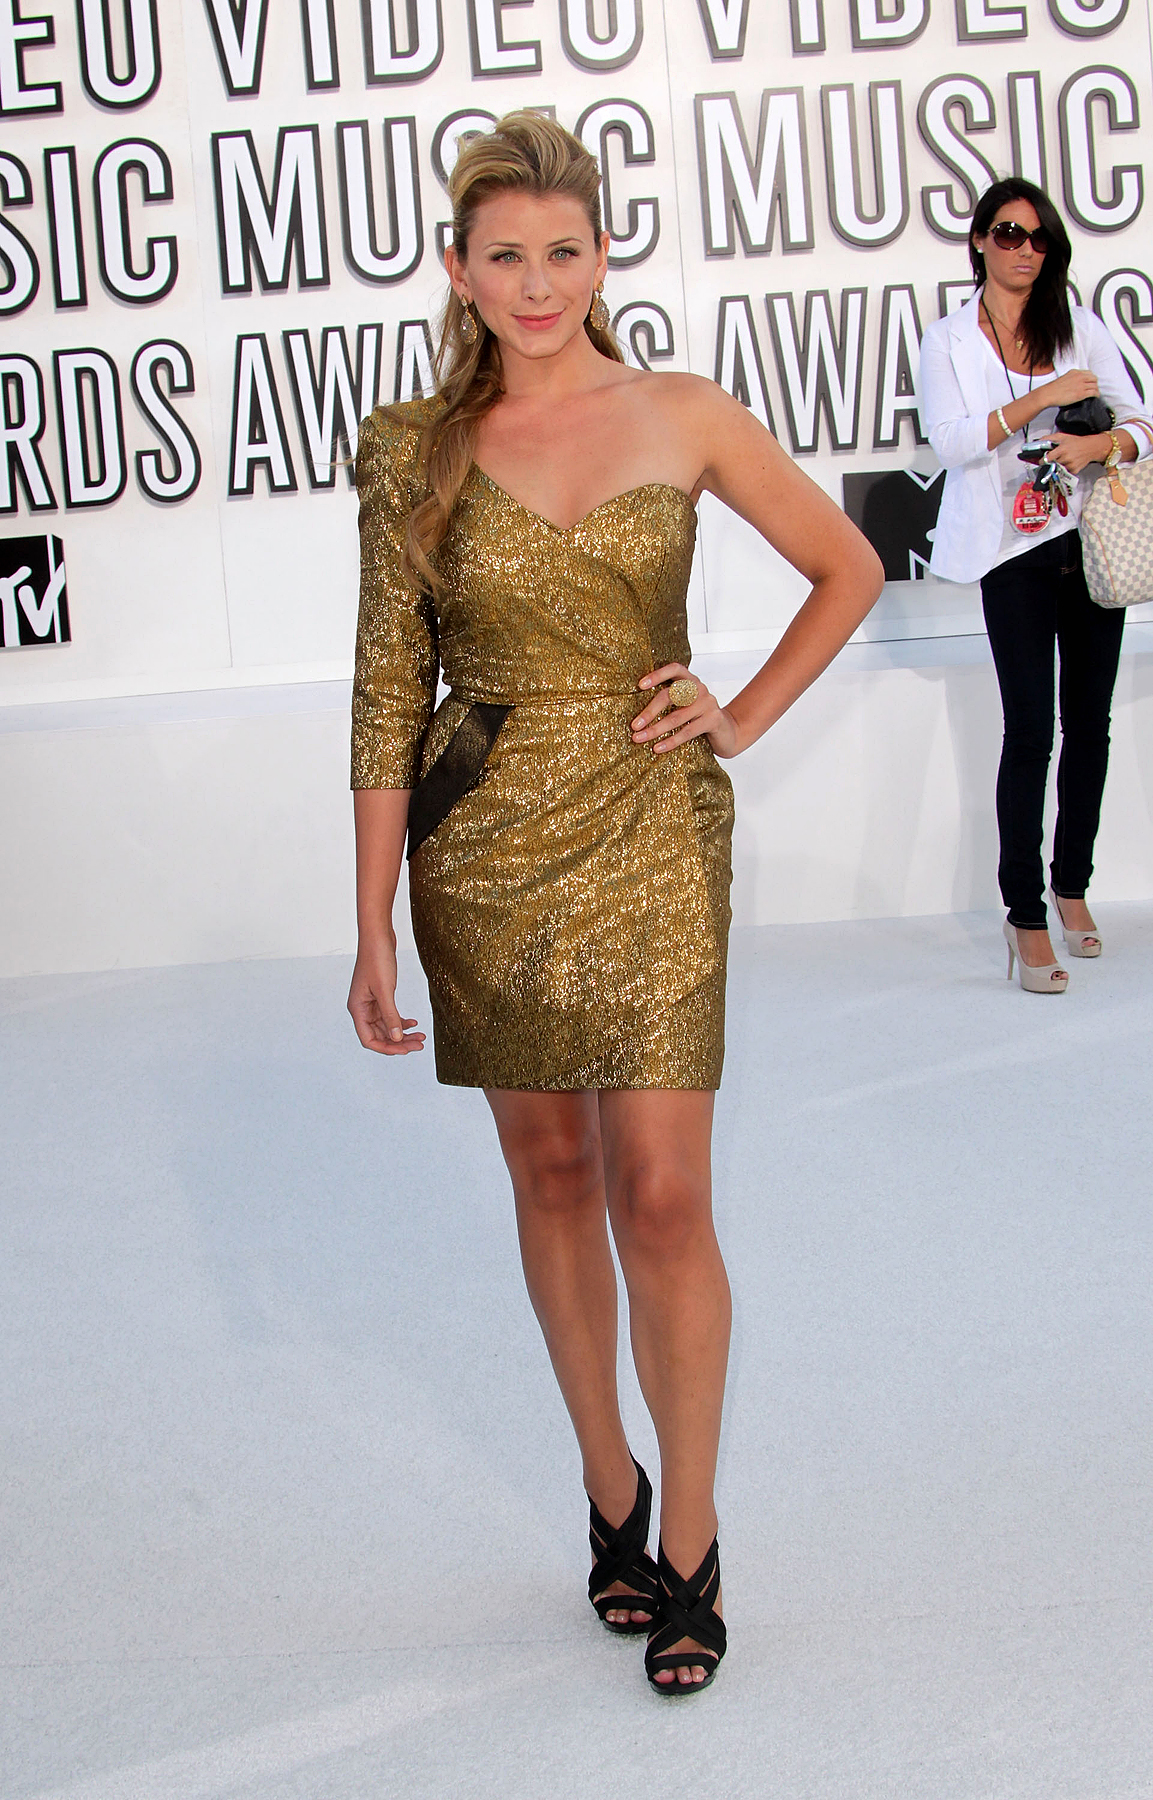 Lo Bosworth at 2010 MTV Video Music Awards (PHOTOS)